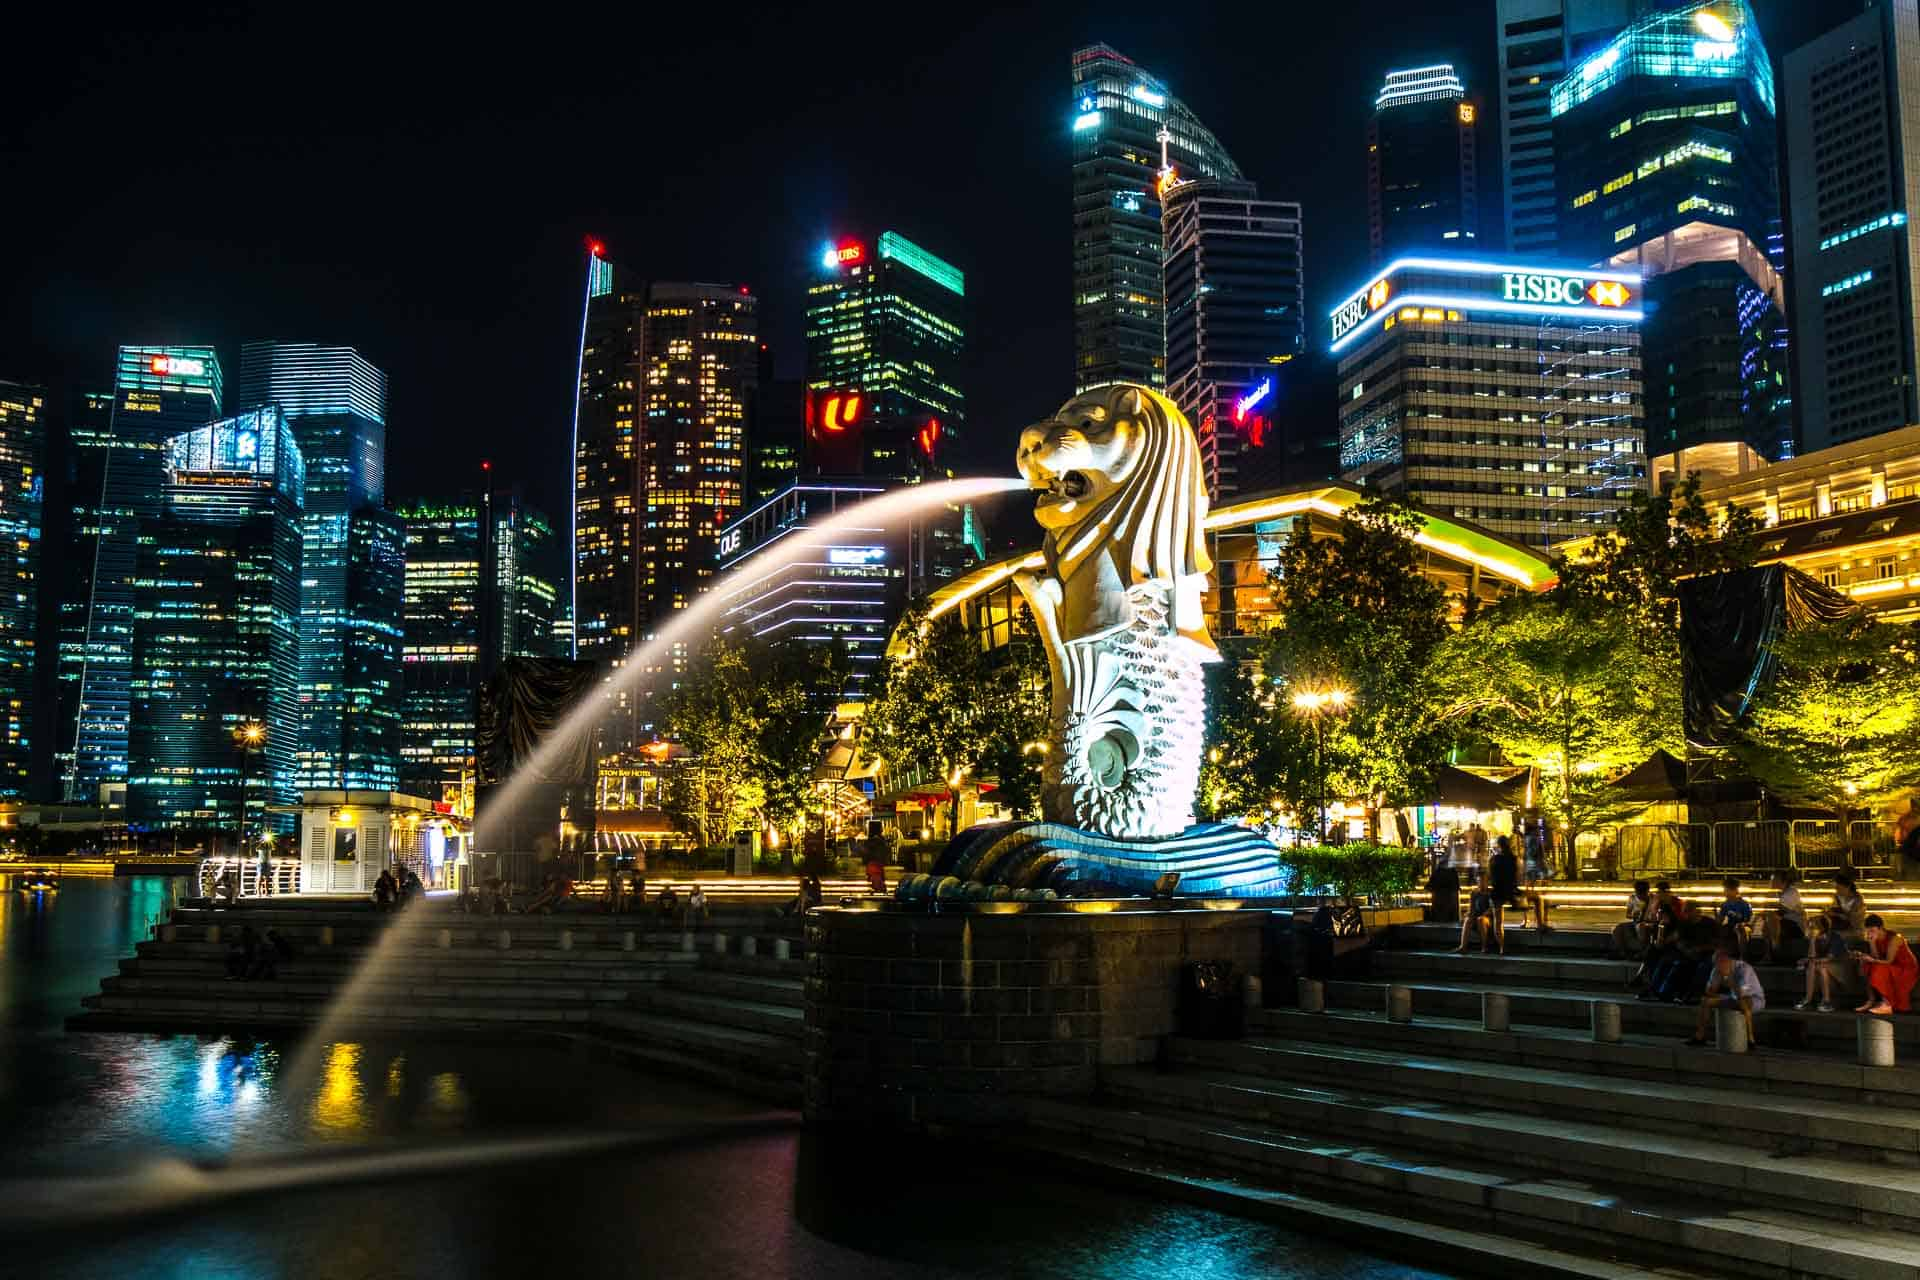 Singapore Travel Itinerary - 4 Days in the Lion City